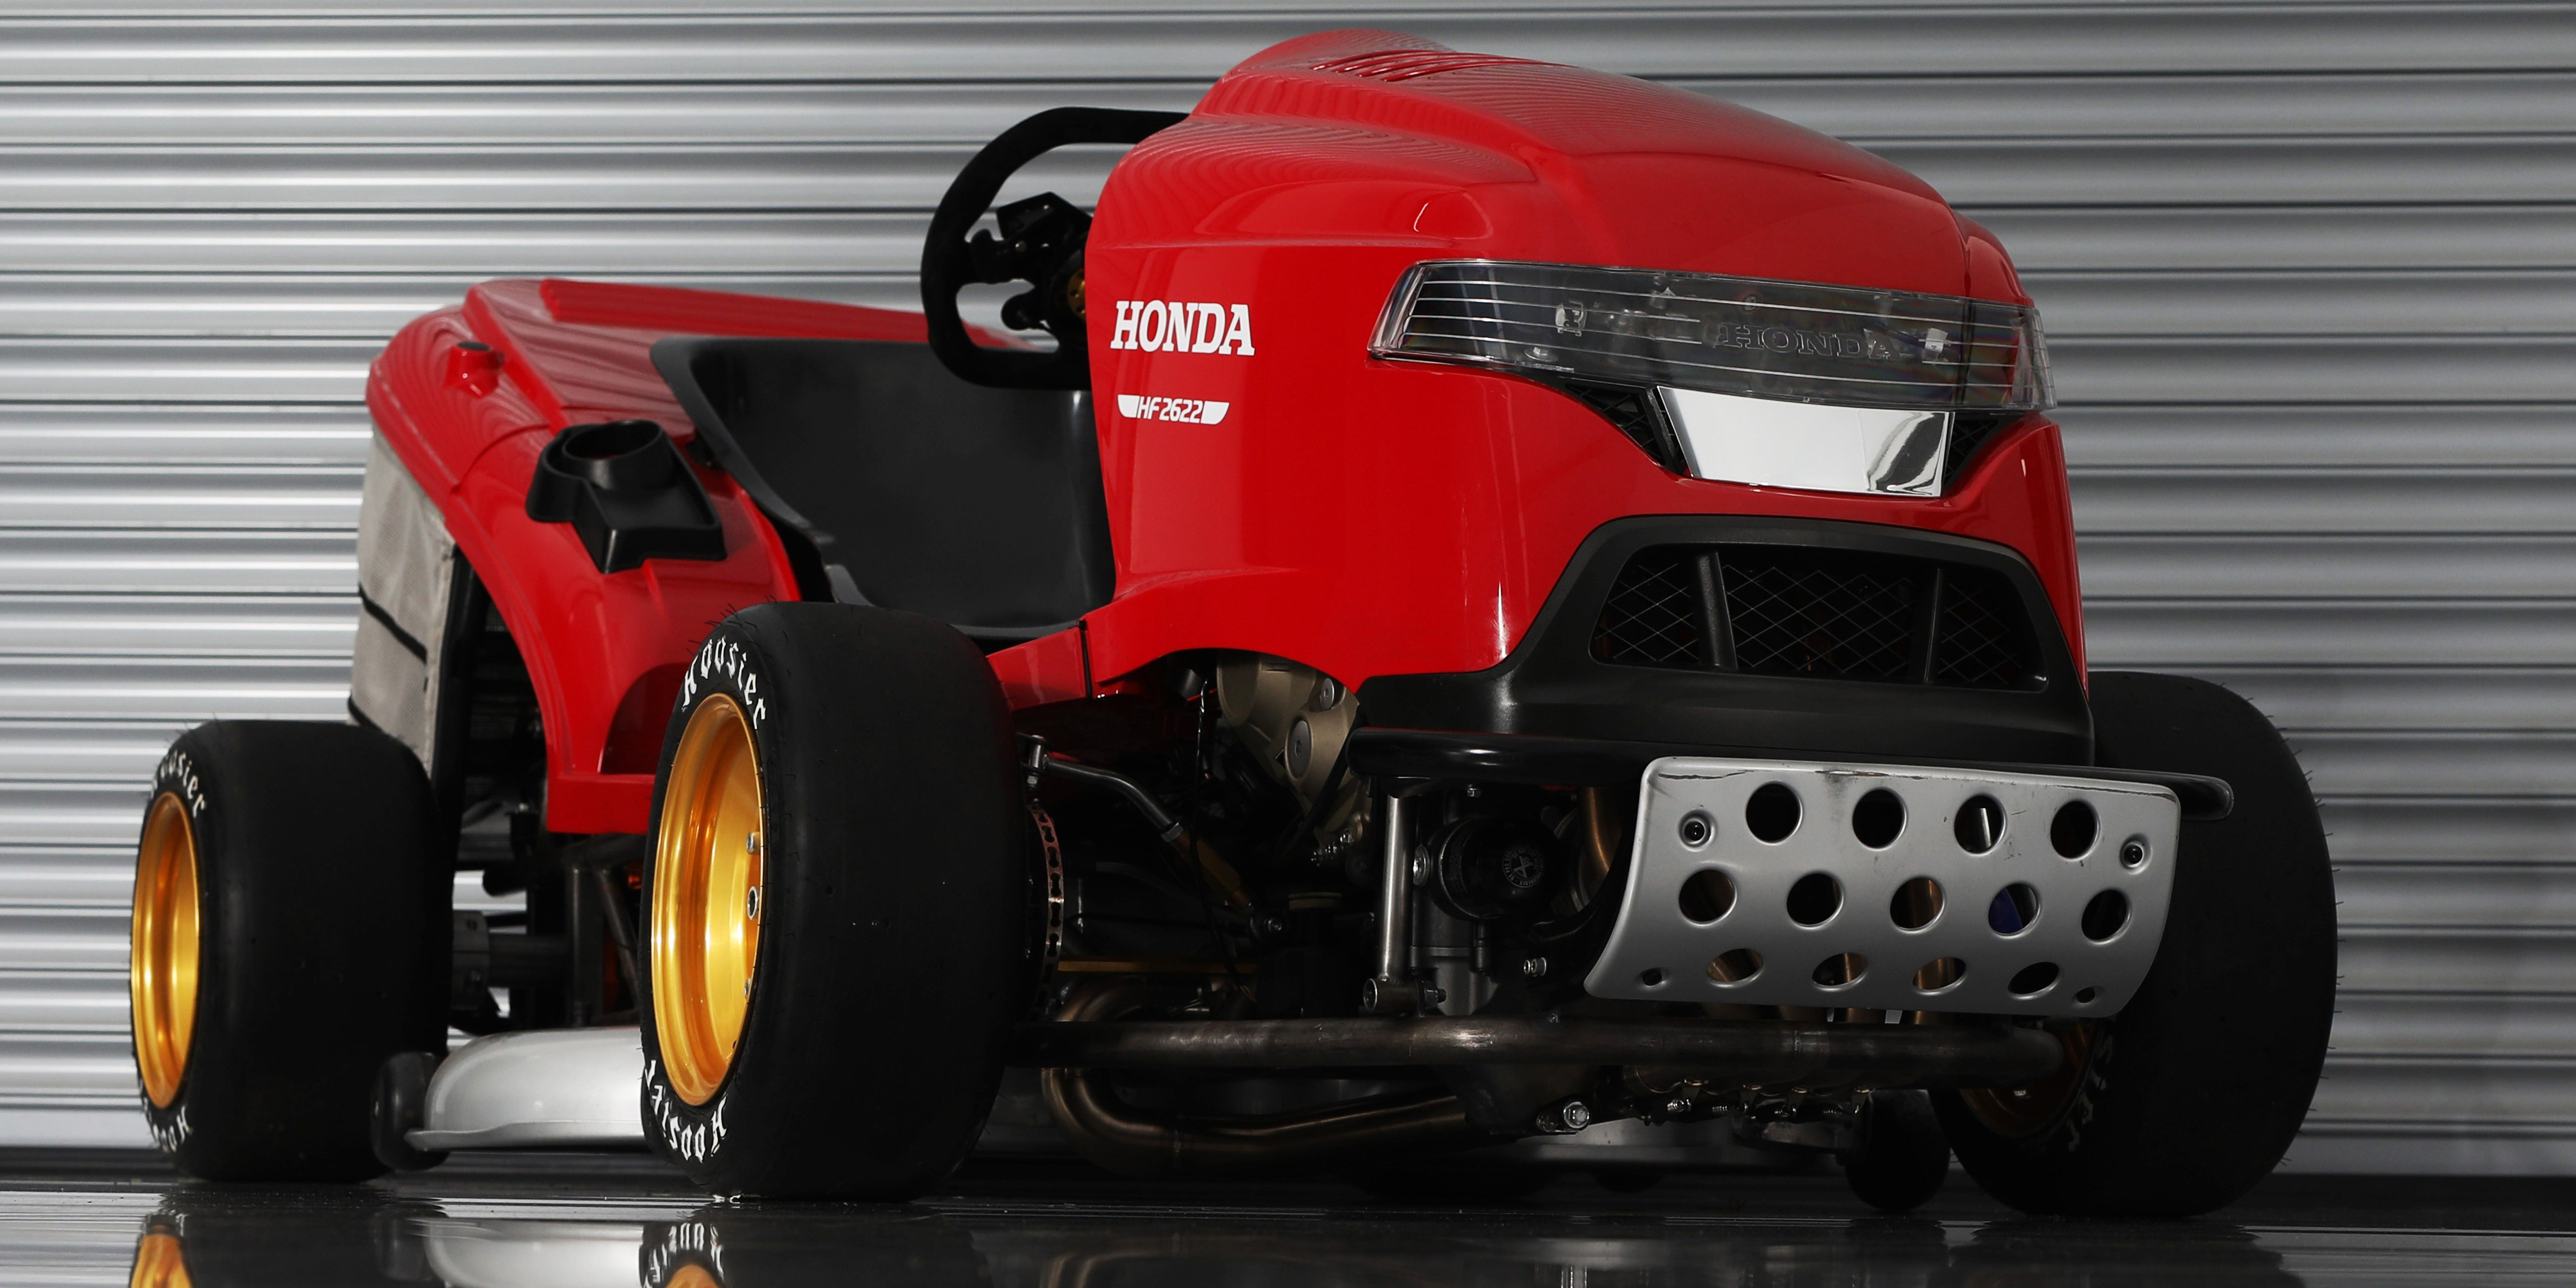 Honda Jammed A Cbr1000rr Engine Into Mower And Theyre Taking It Lawn Fuel Filter To Goodwood Revzilla